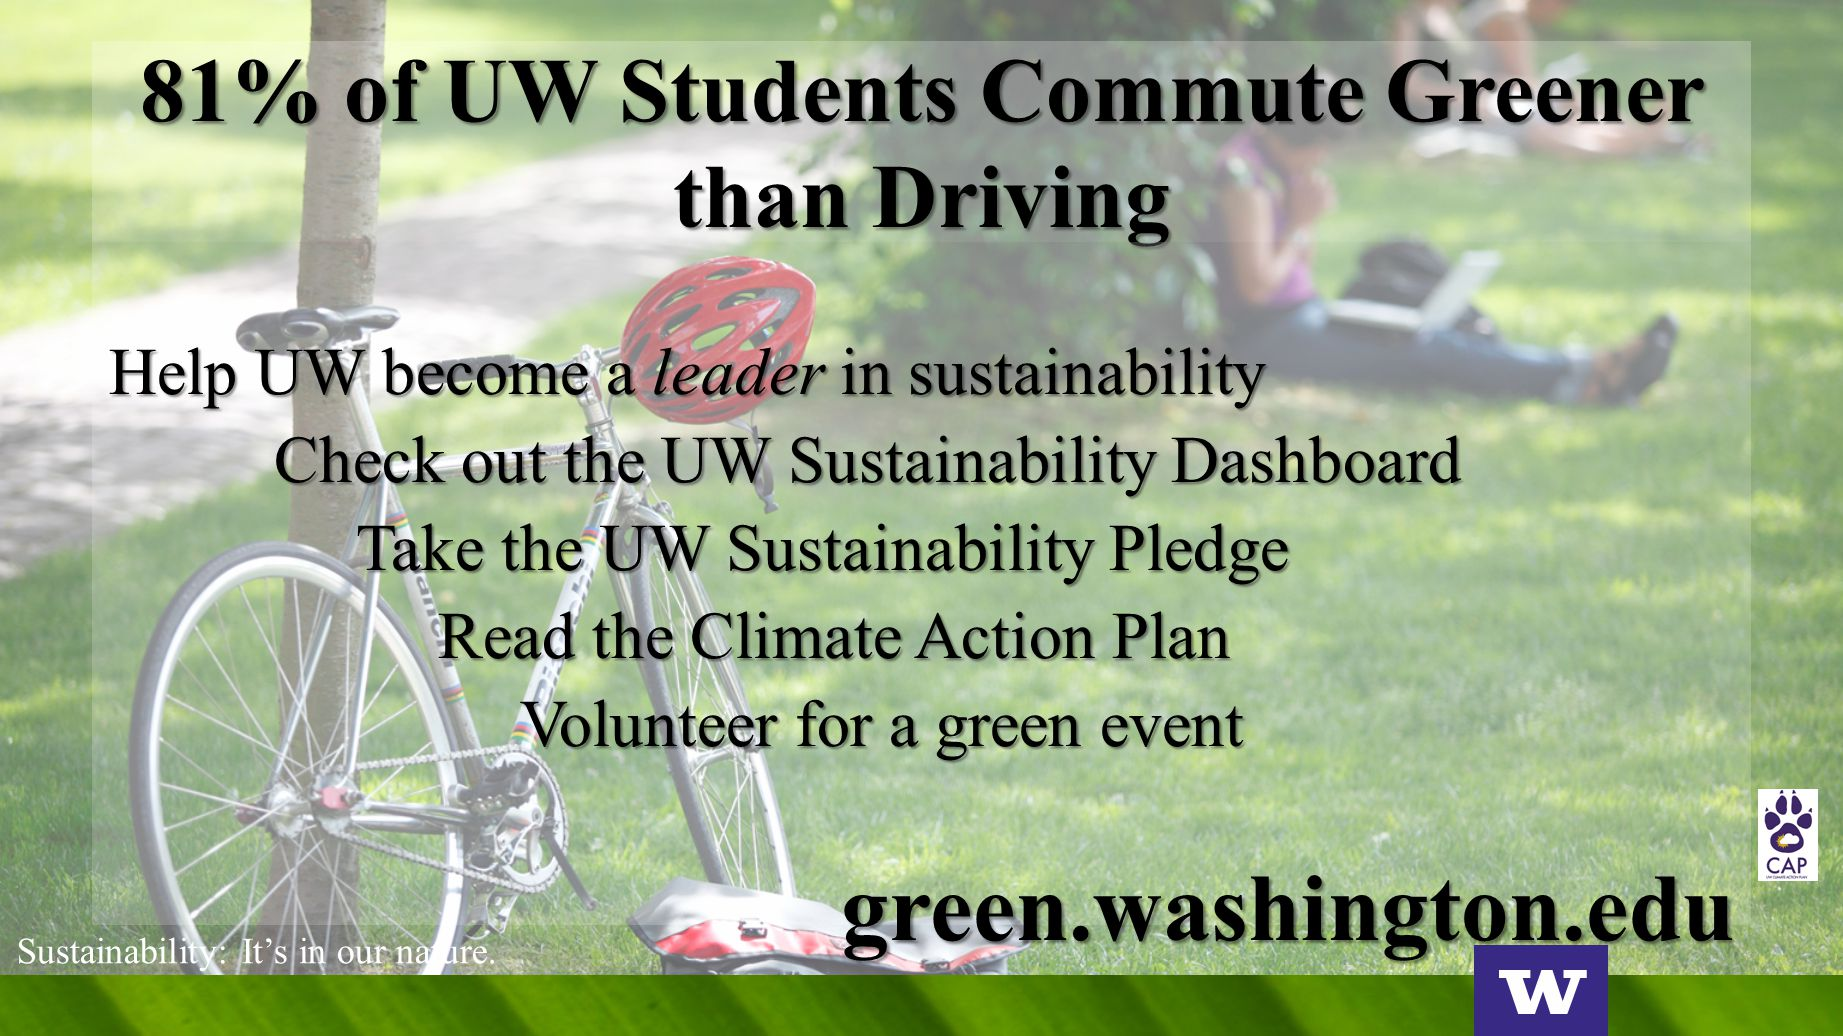 81% of UW Students Commute Greener than Driving Help UW become a leader in sustainability Check out the UW Sustainability Dashboard Take the UW Sustainability Pledge Read the Climate Action Plan Volunteer for a green event green.washington.edu Sustainability: It's in our nature.